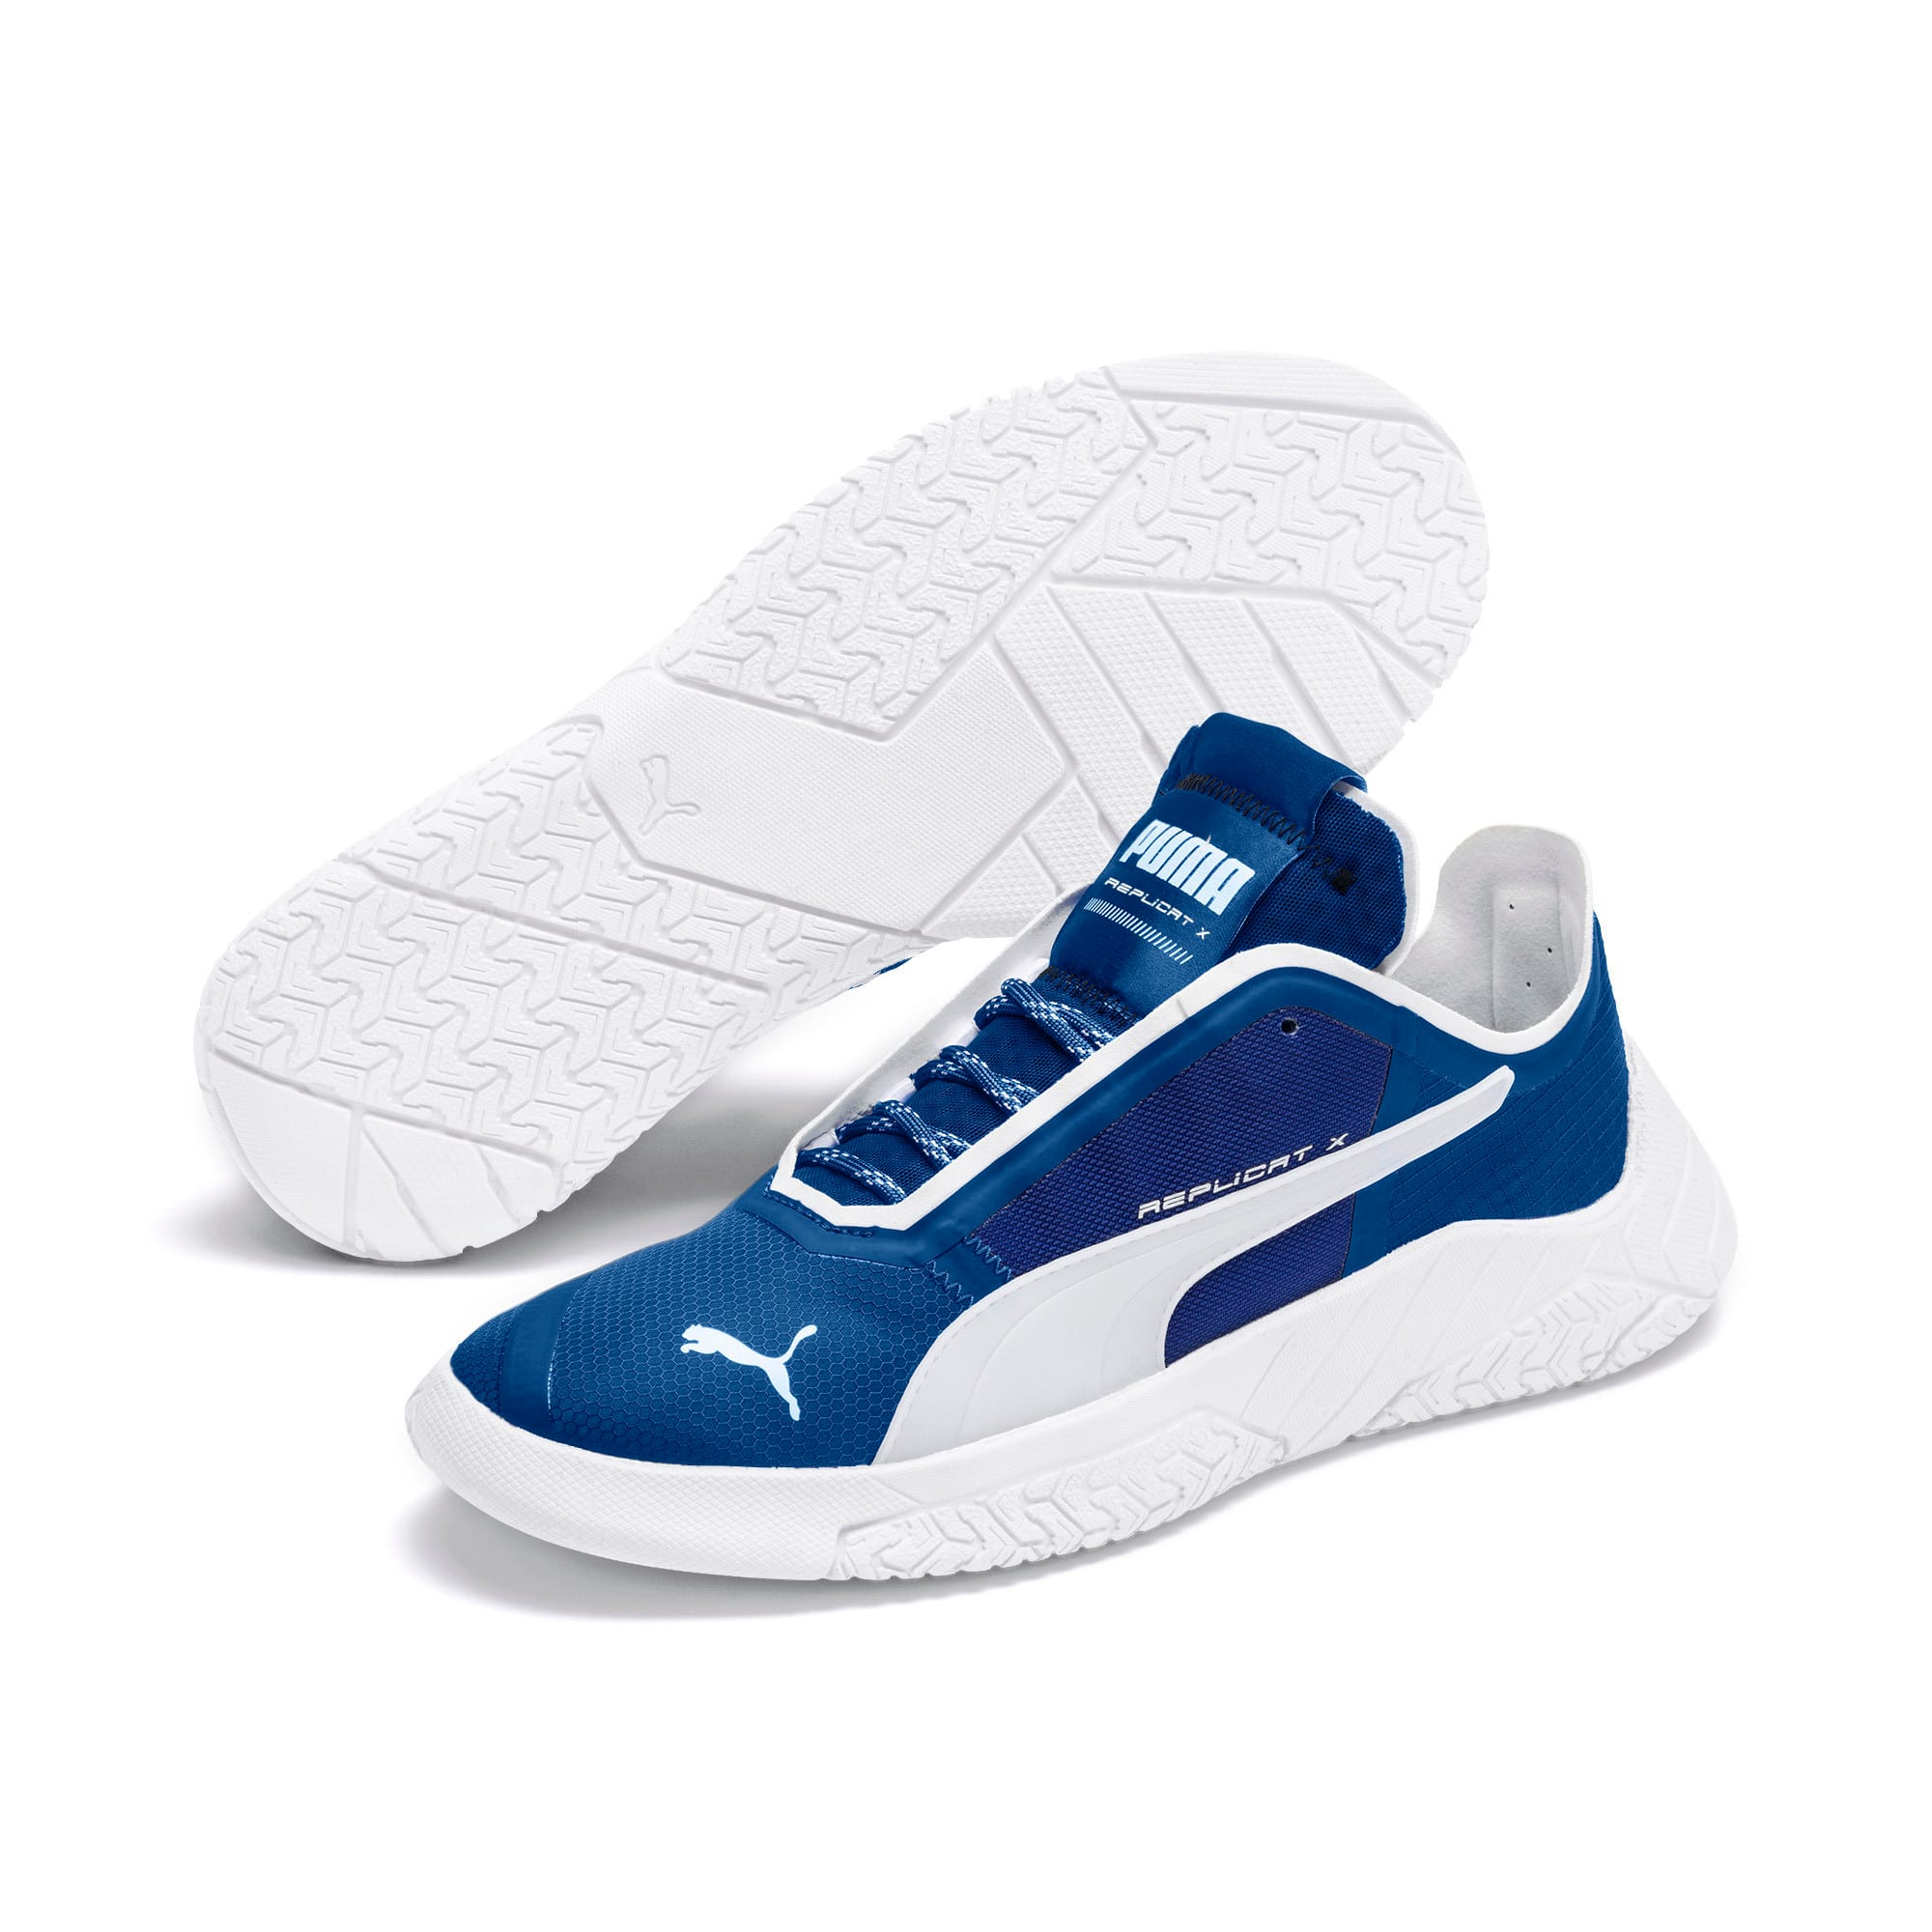 Thumbnail 2 of Basket Replicat-X Circuit, Galaxy Blue-Puma White, medium